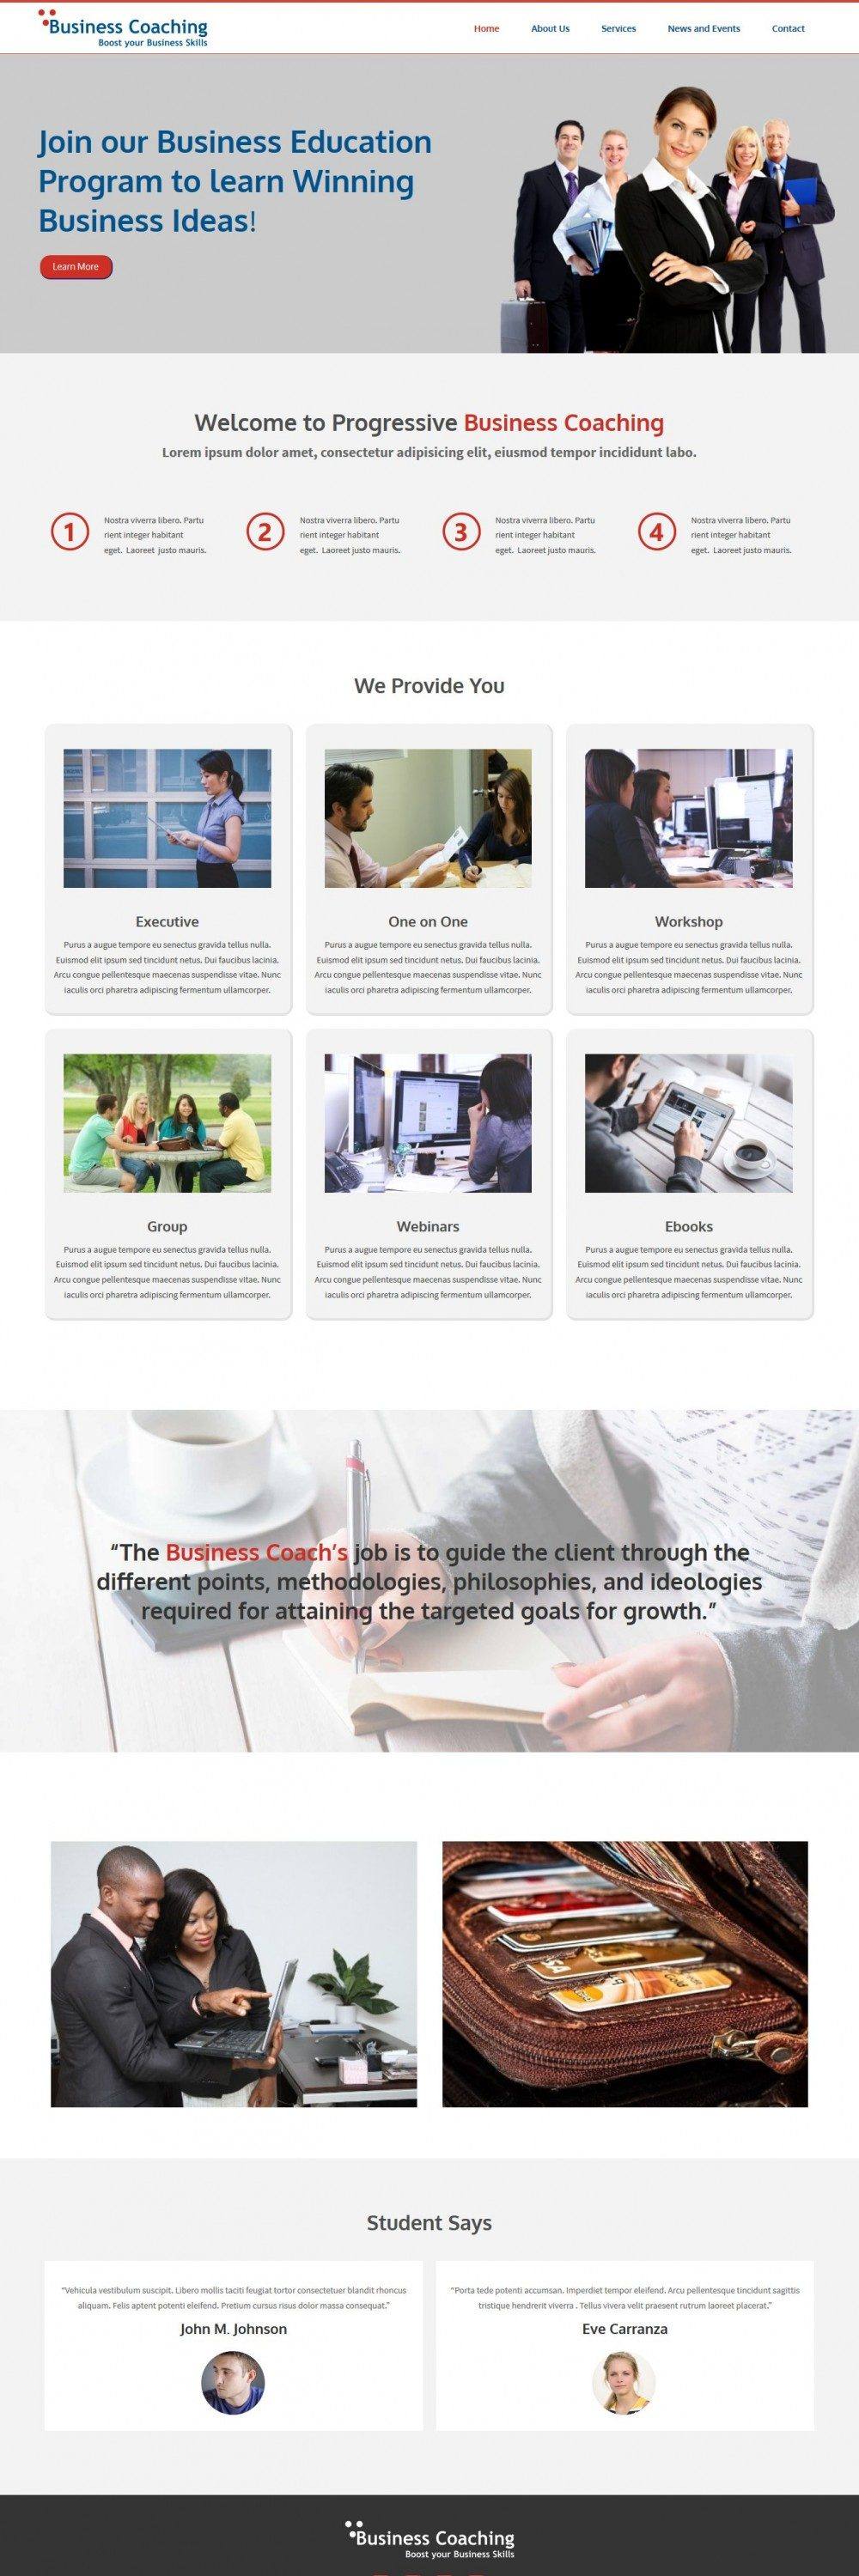 Business Coaching Responsive WordPress Theme for Business Coaching